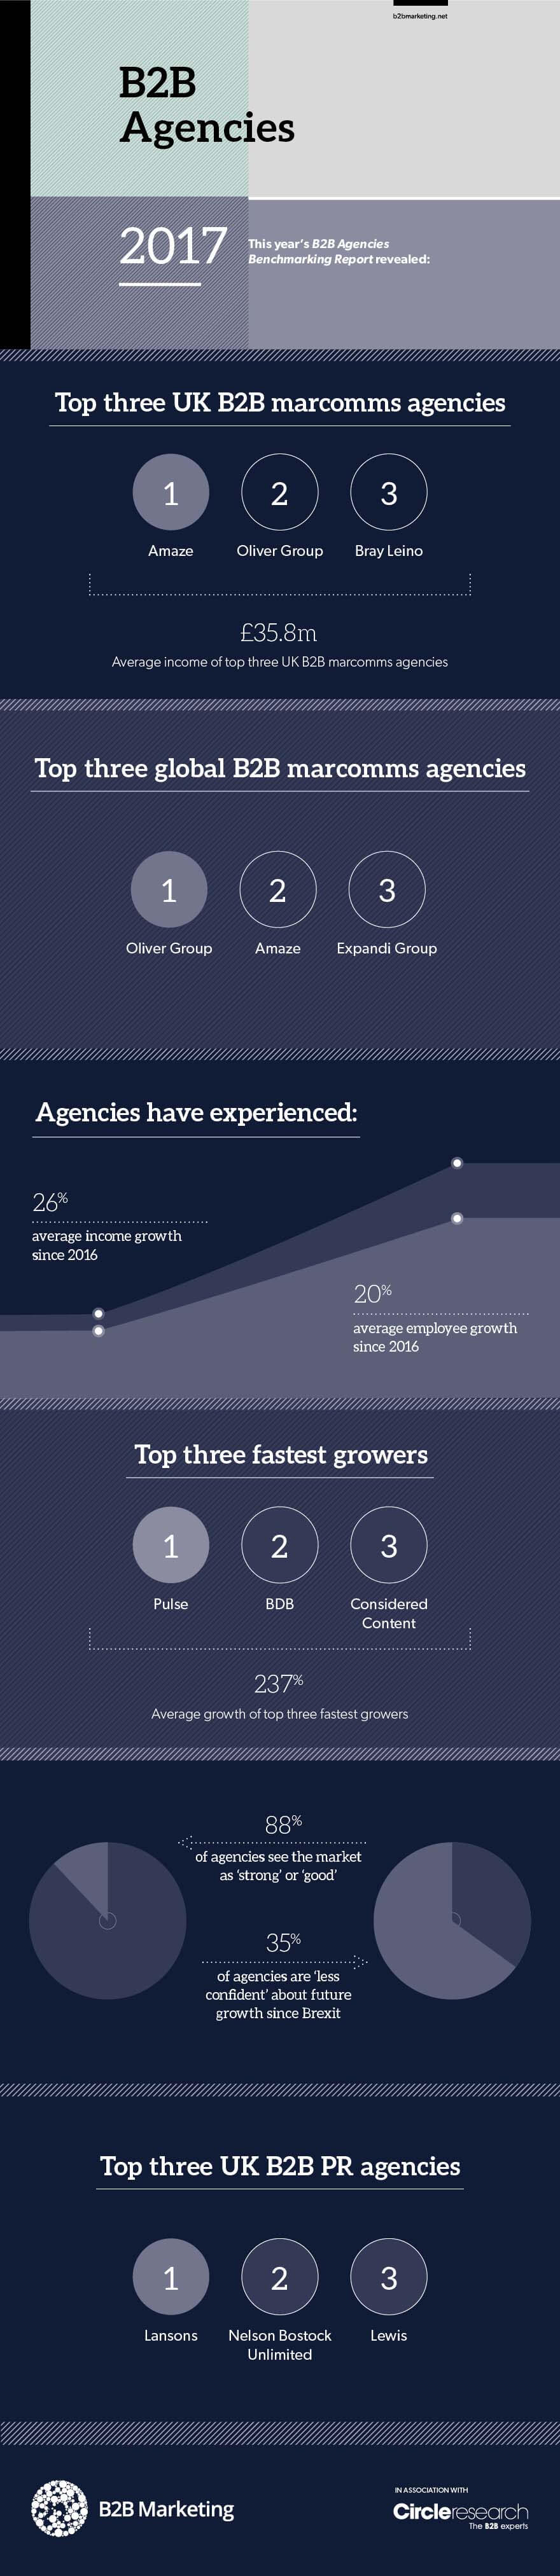 B2B Agencies Benchmarking Report Infographic